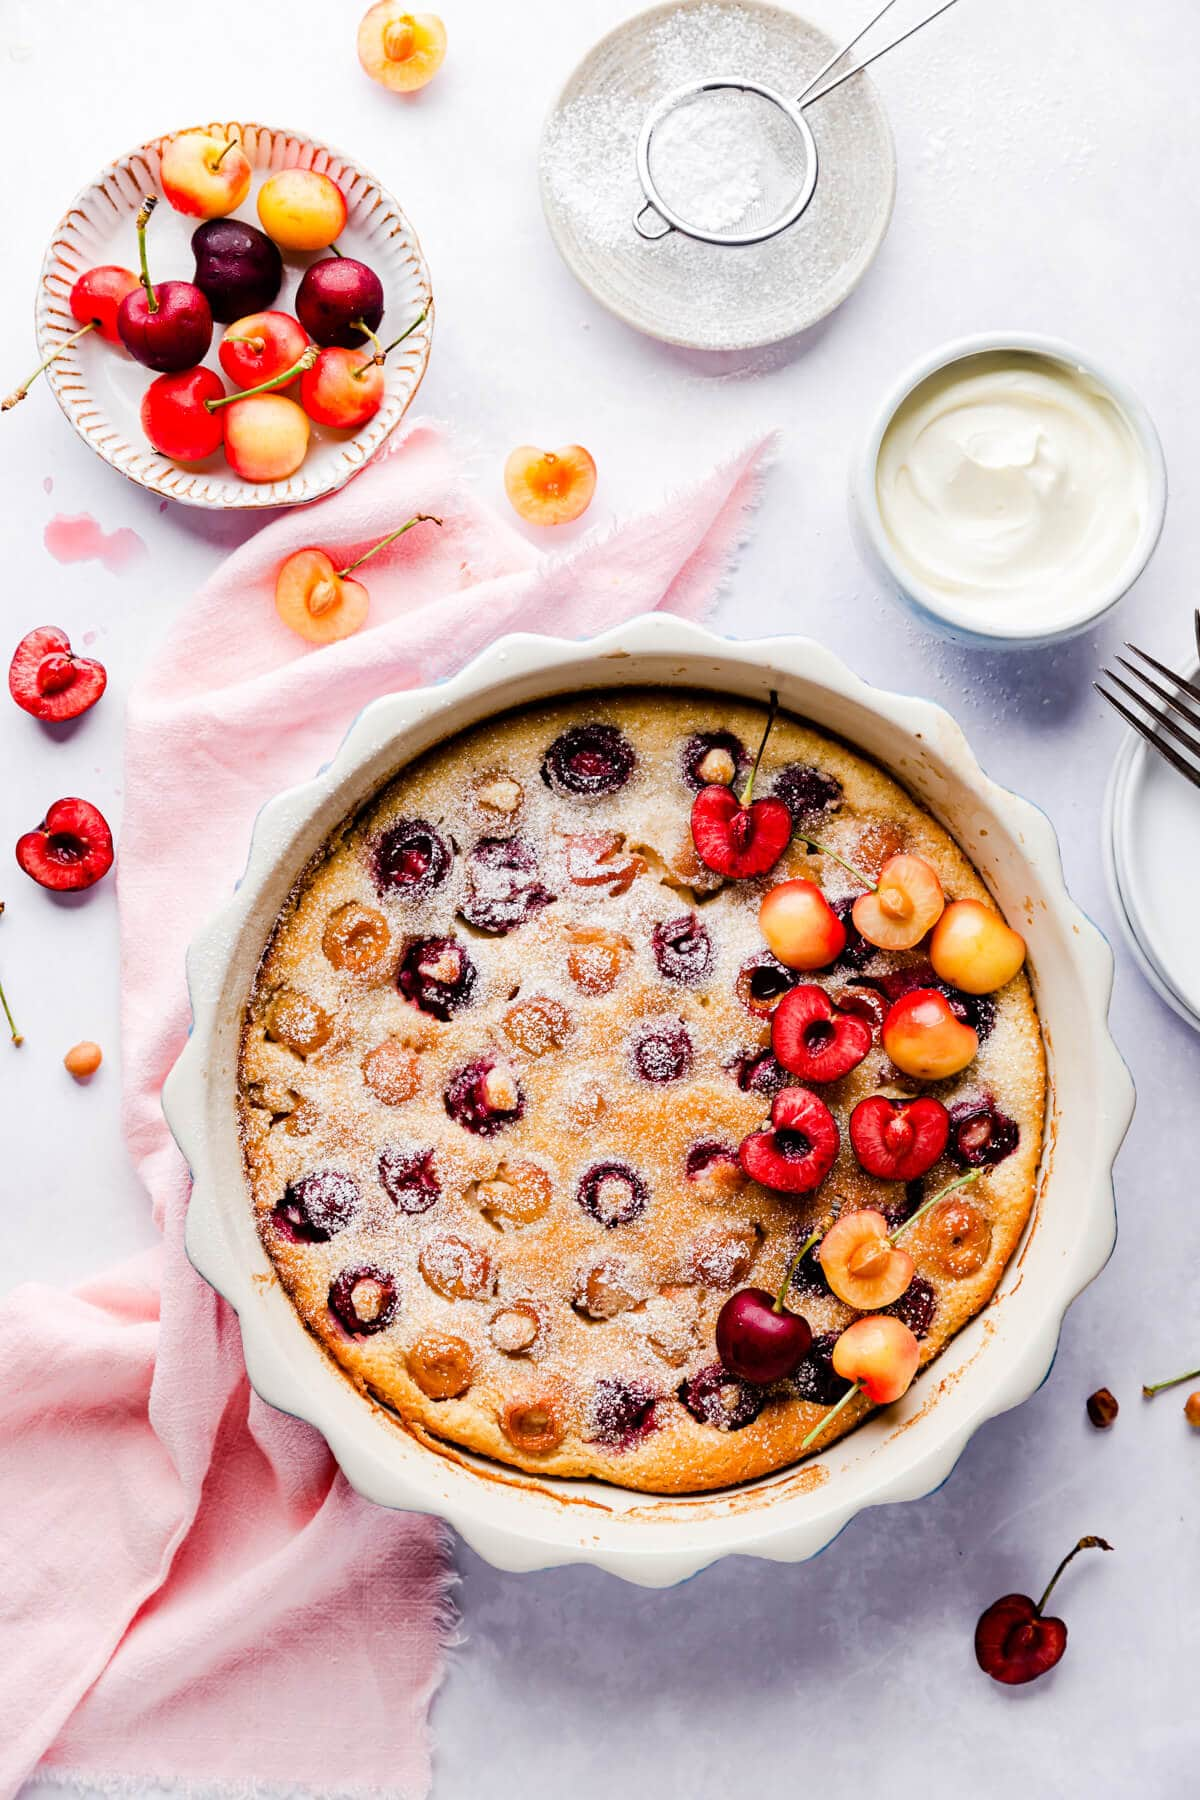 Cherry clafoutis in a baking dish with some fresh cherries on side